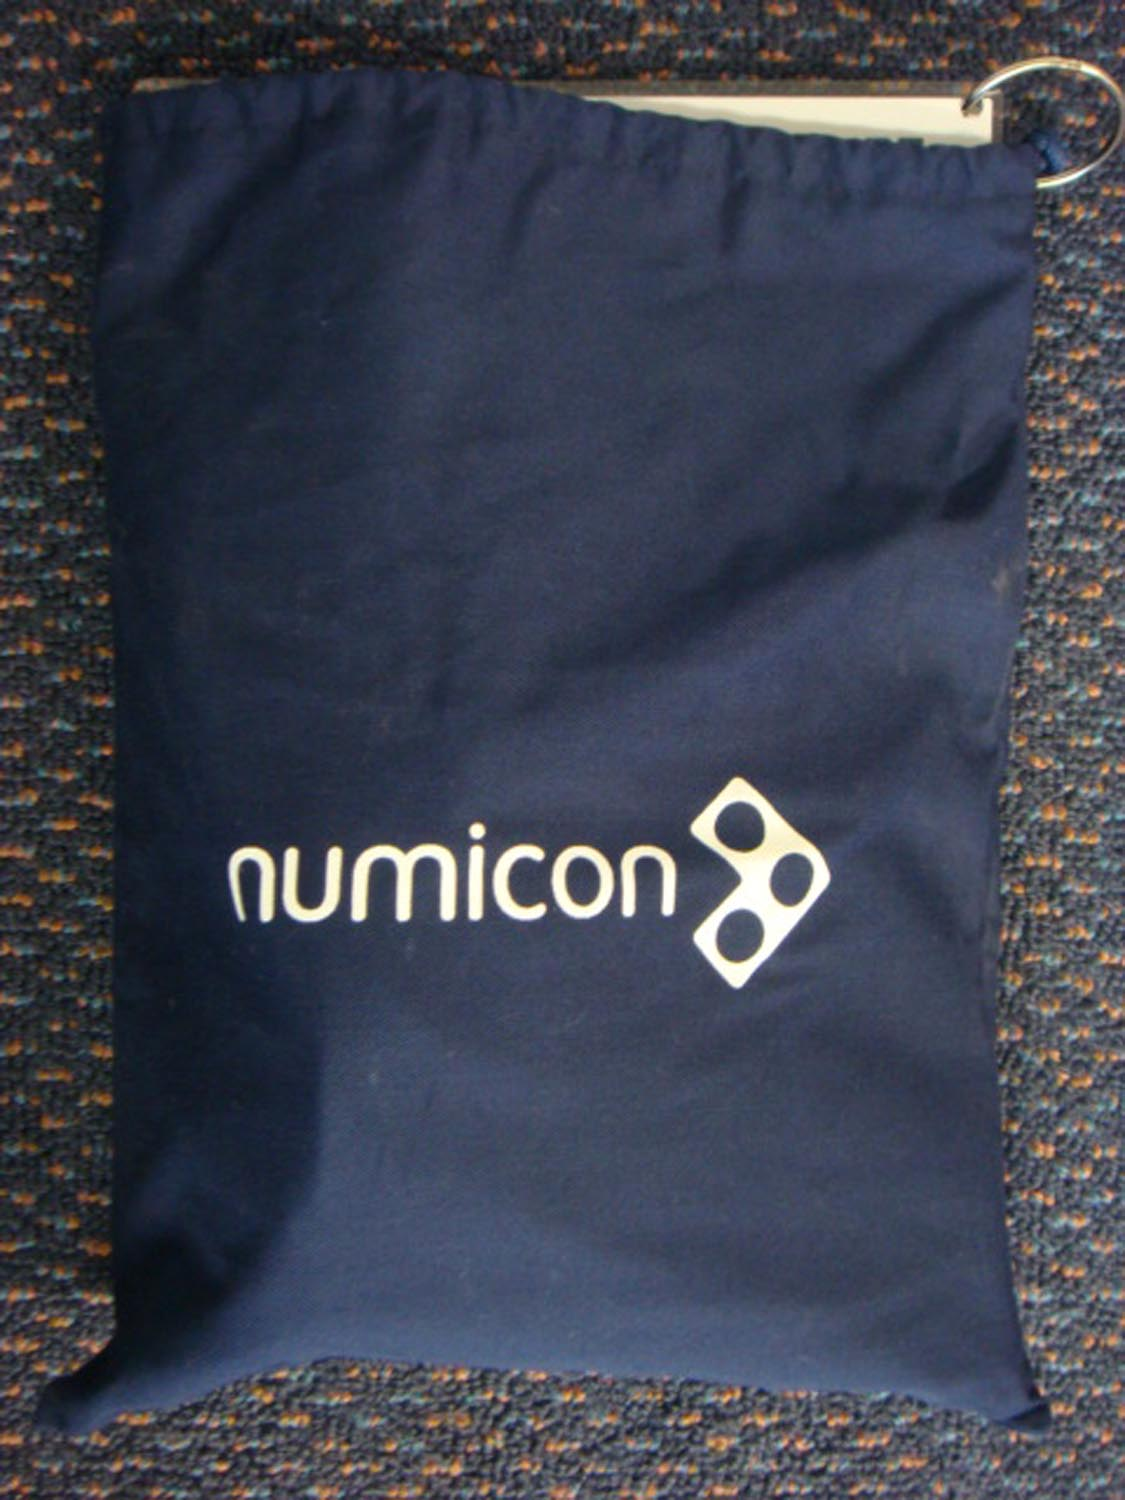 NUM15to19-numicon-D